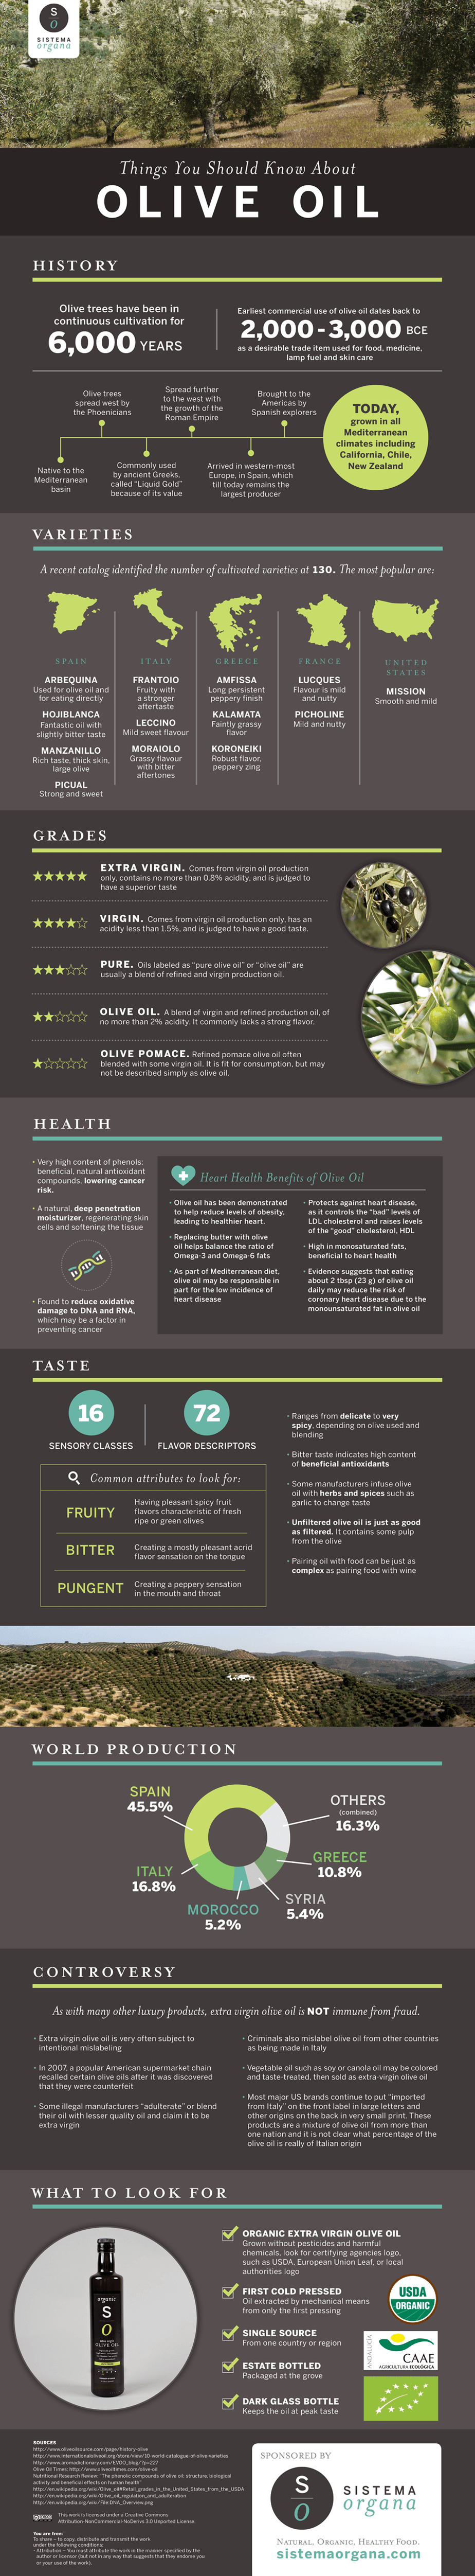 SistemaOrgana_Olive_Oil_Fact_Sheet-infographic